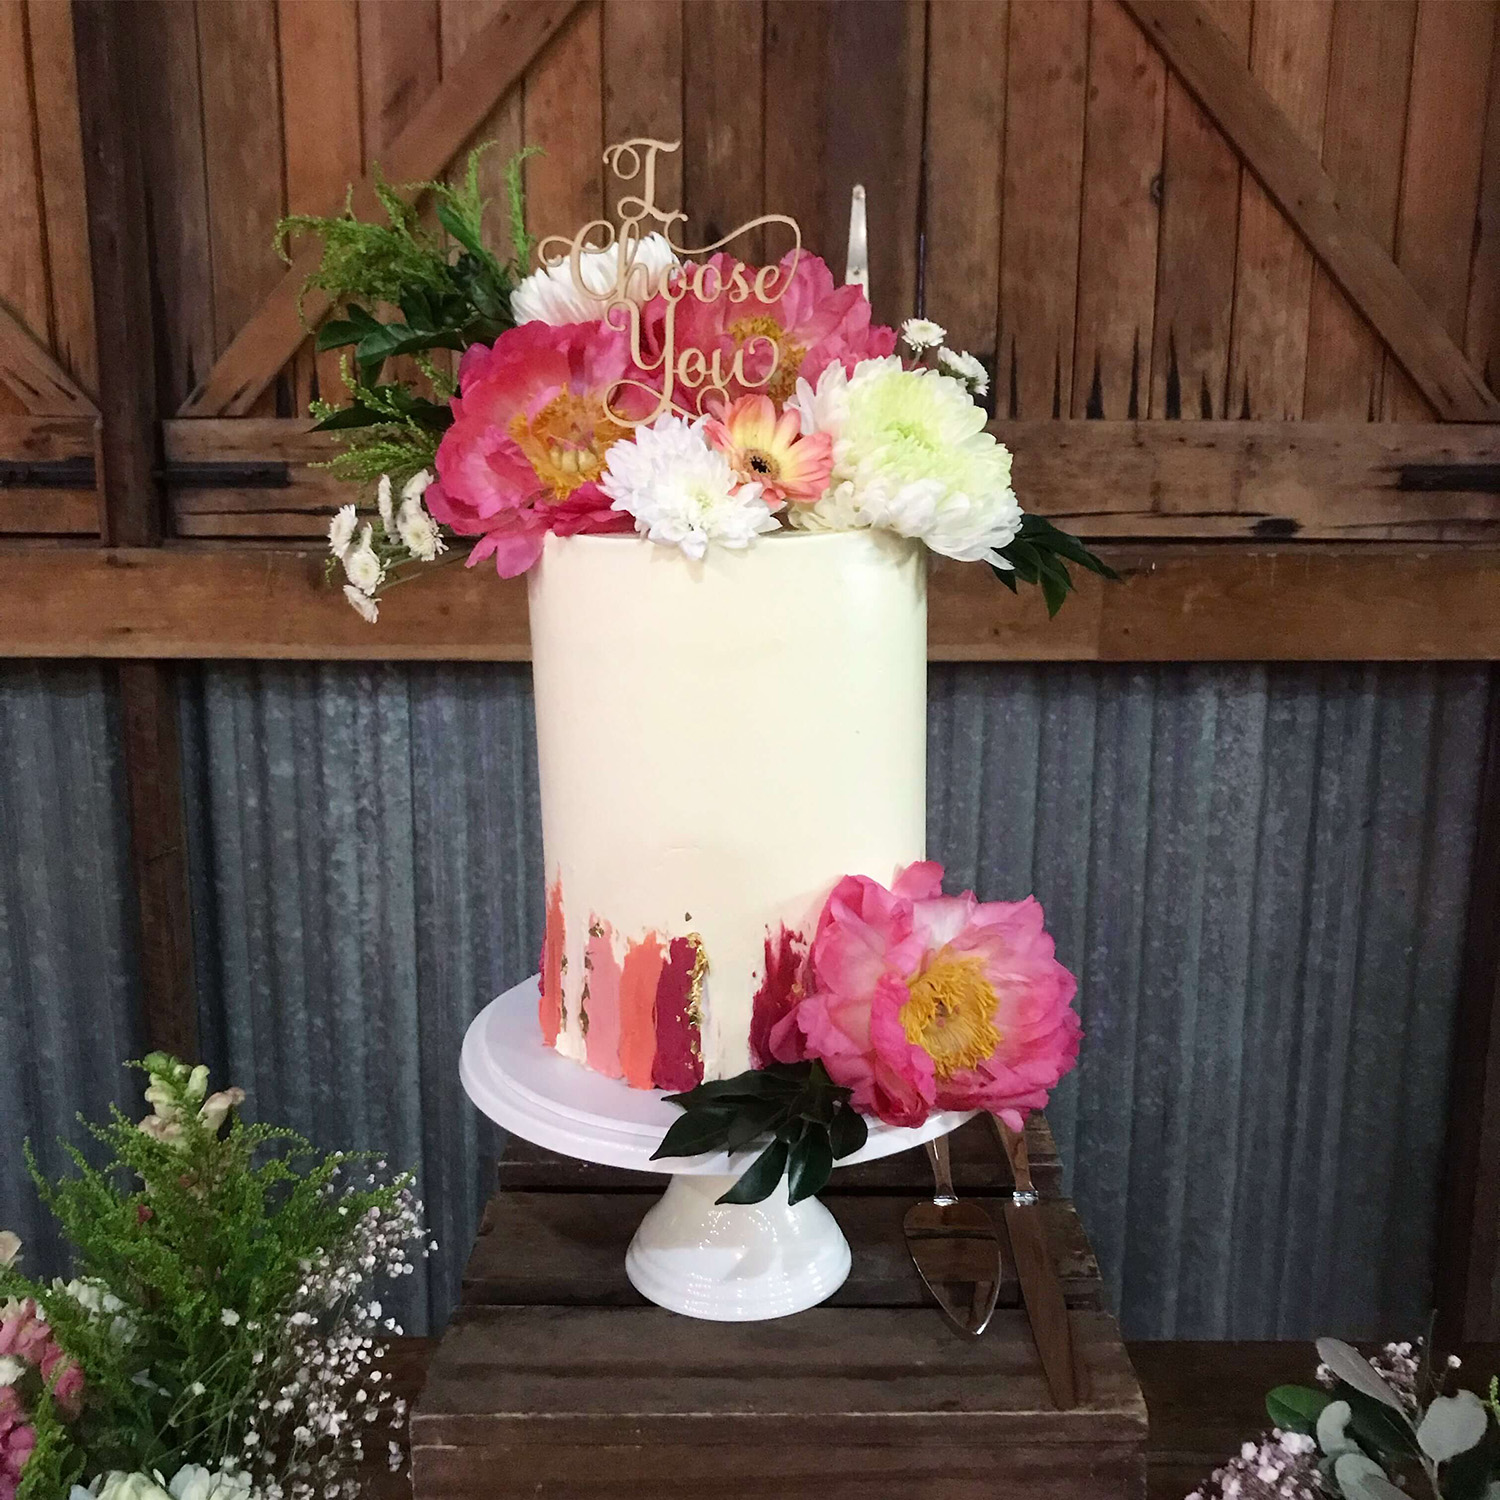 Colourful wedding cake decorated with vibrant peonies and oil paint buttercream strokes